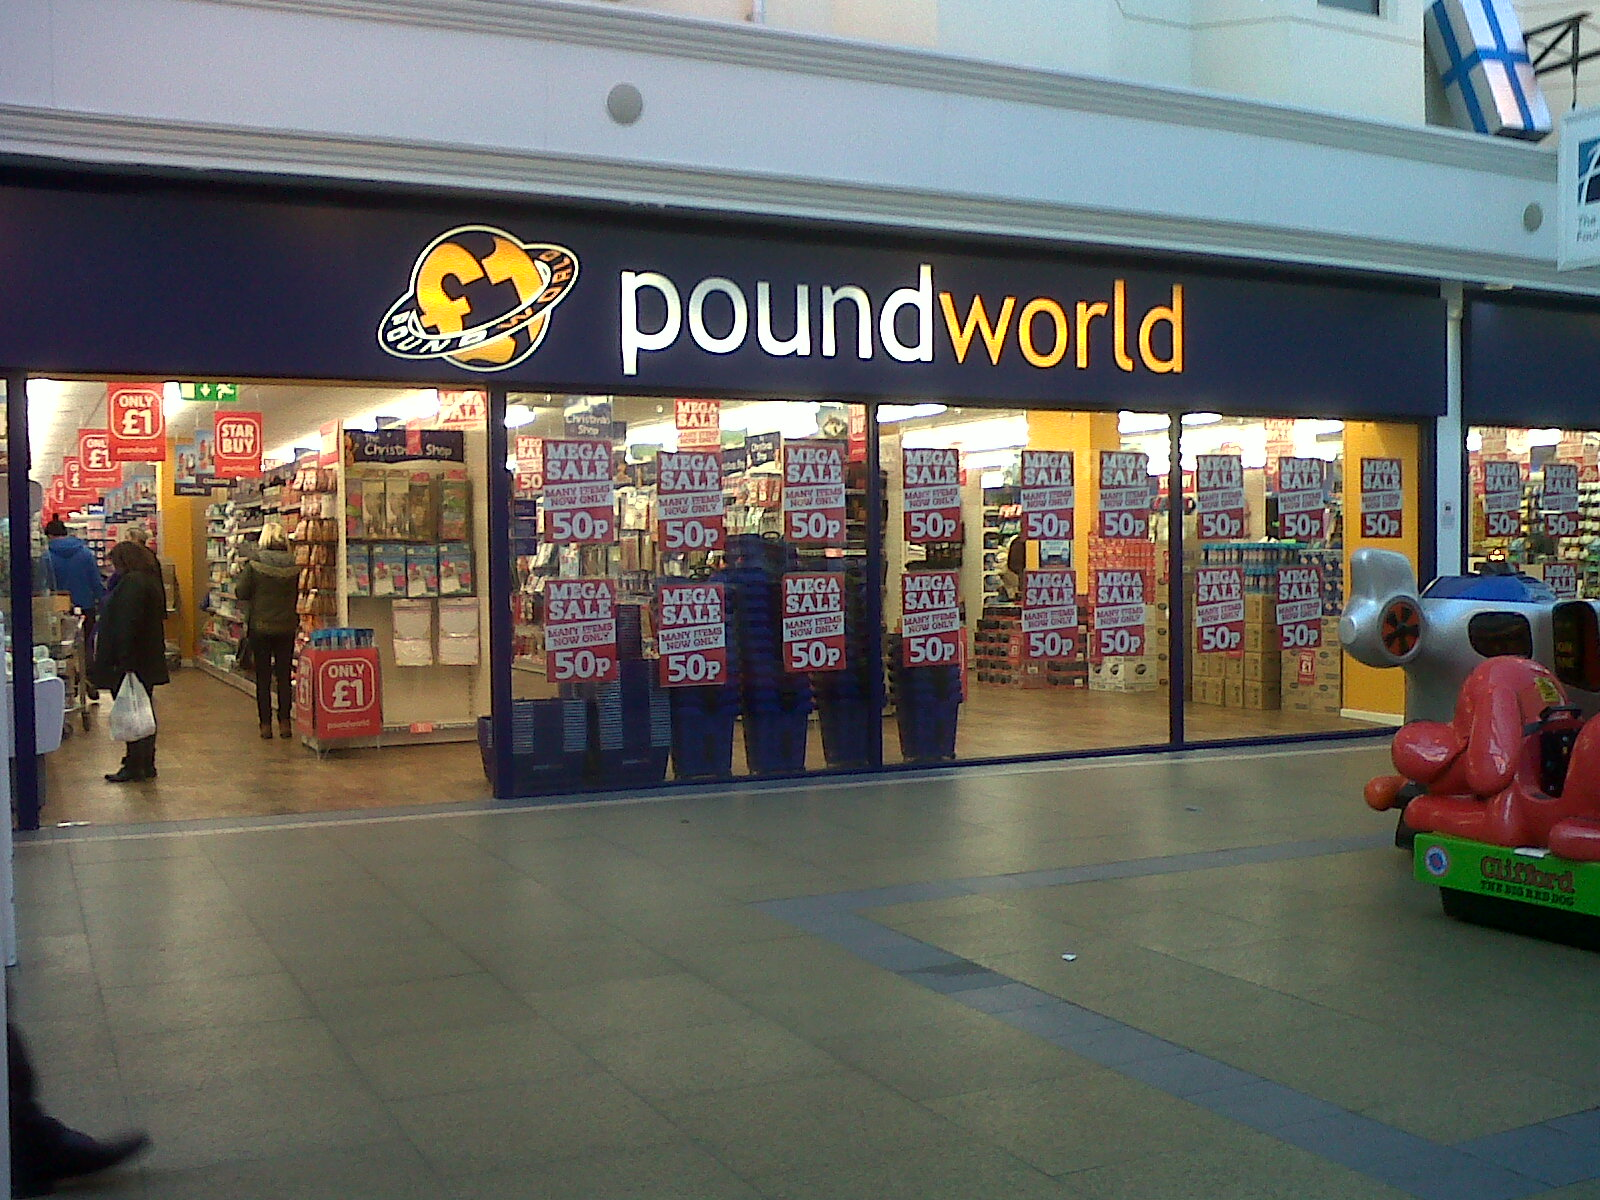 foundry-poundworld-6-1-2012.jpg